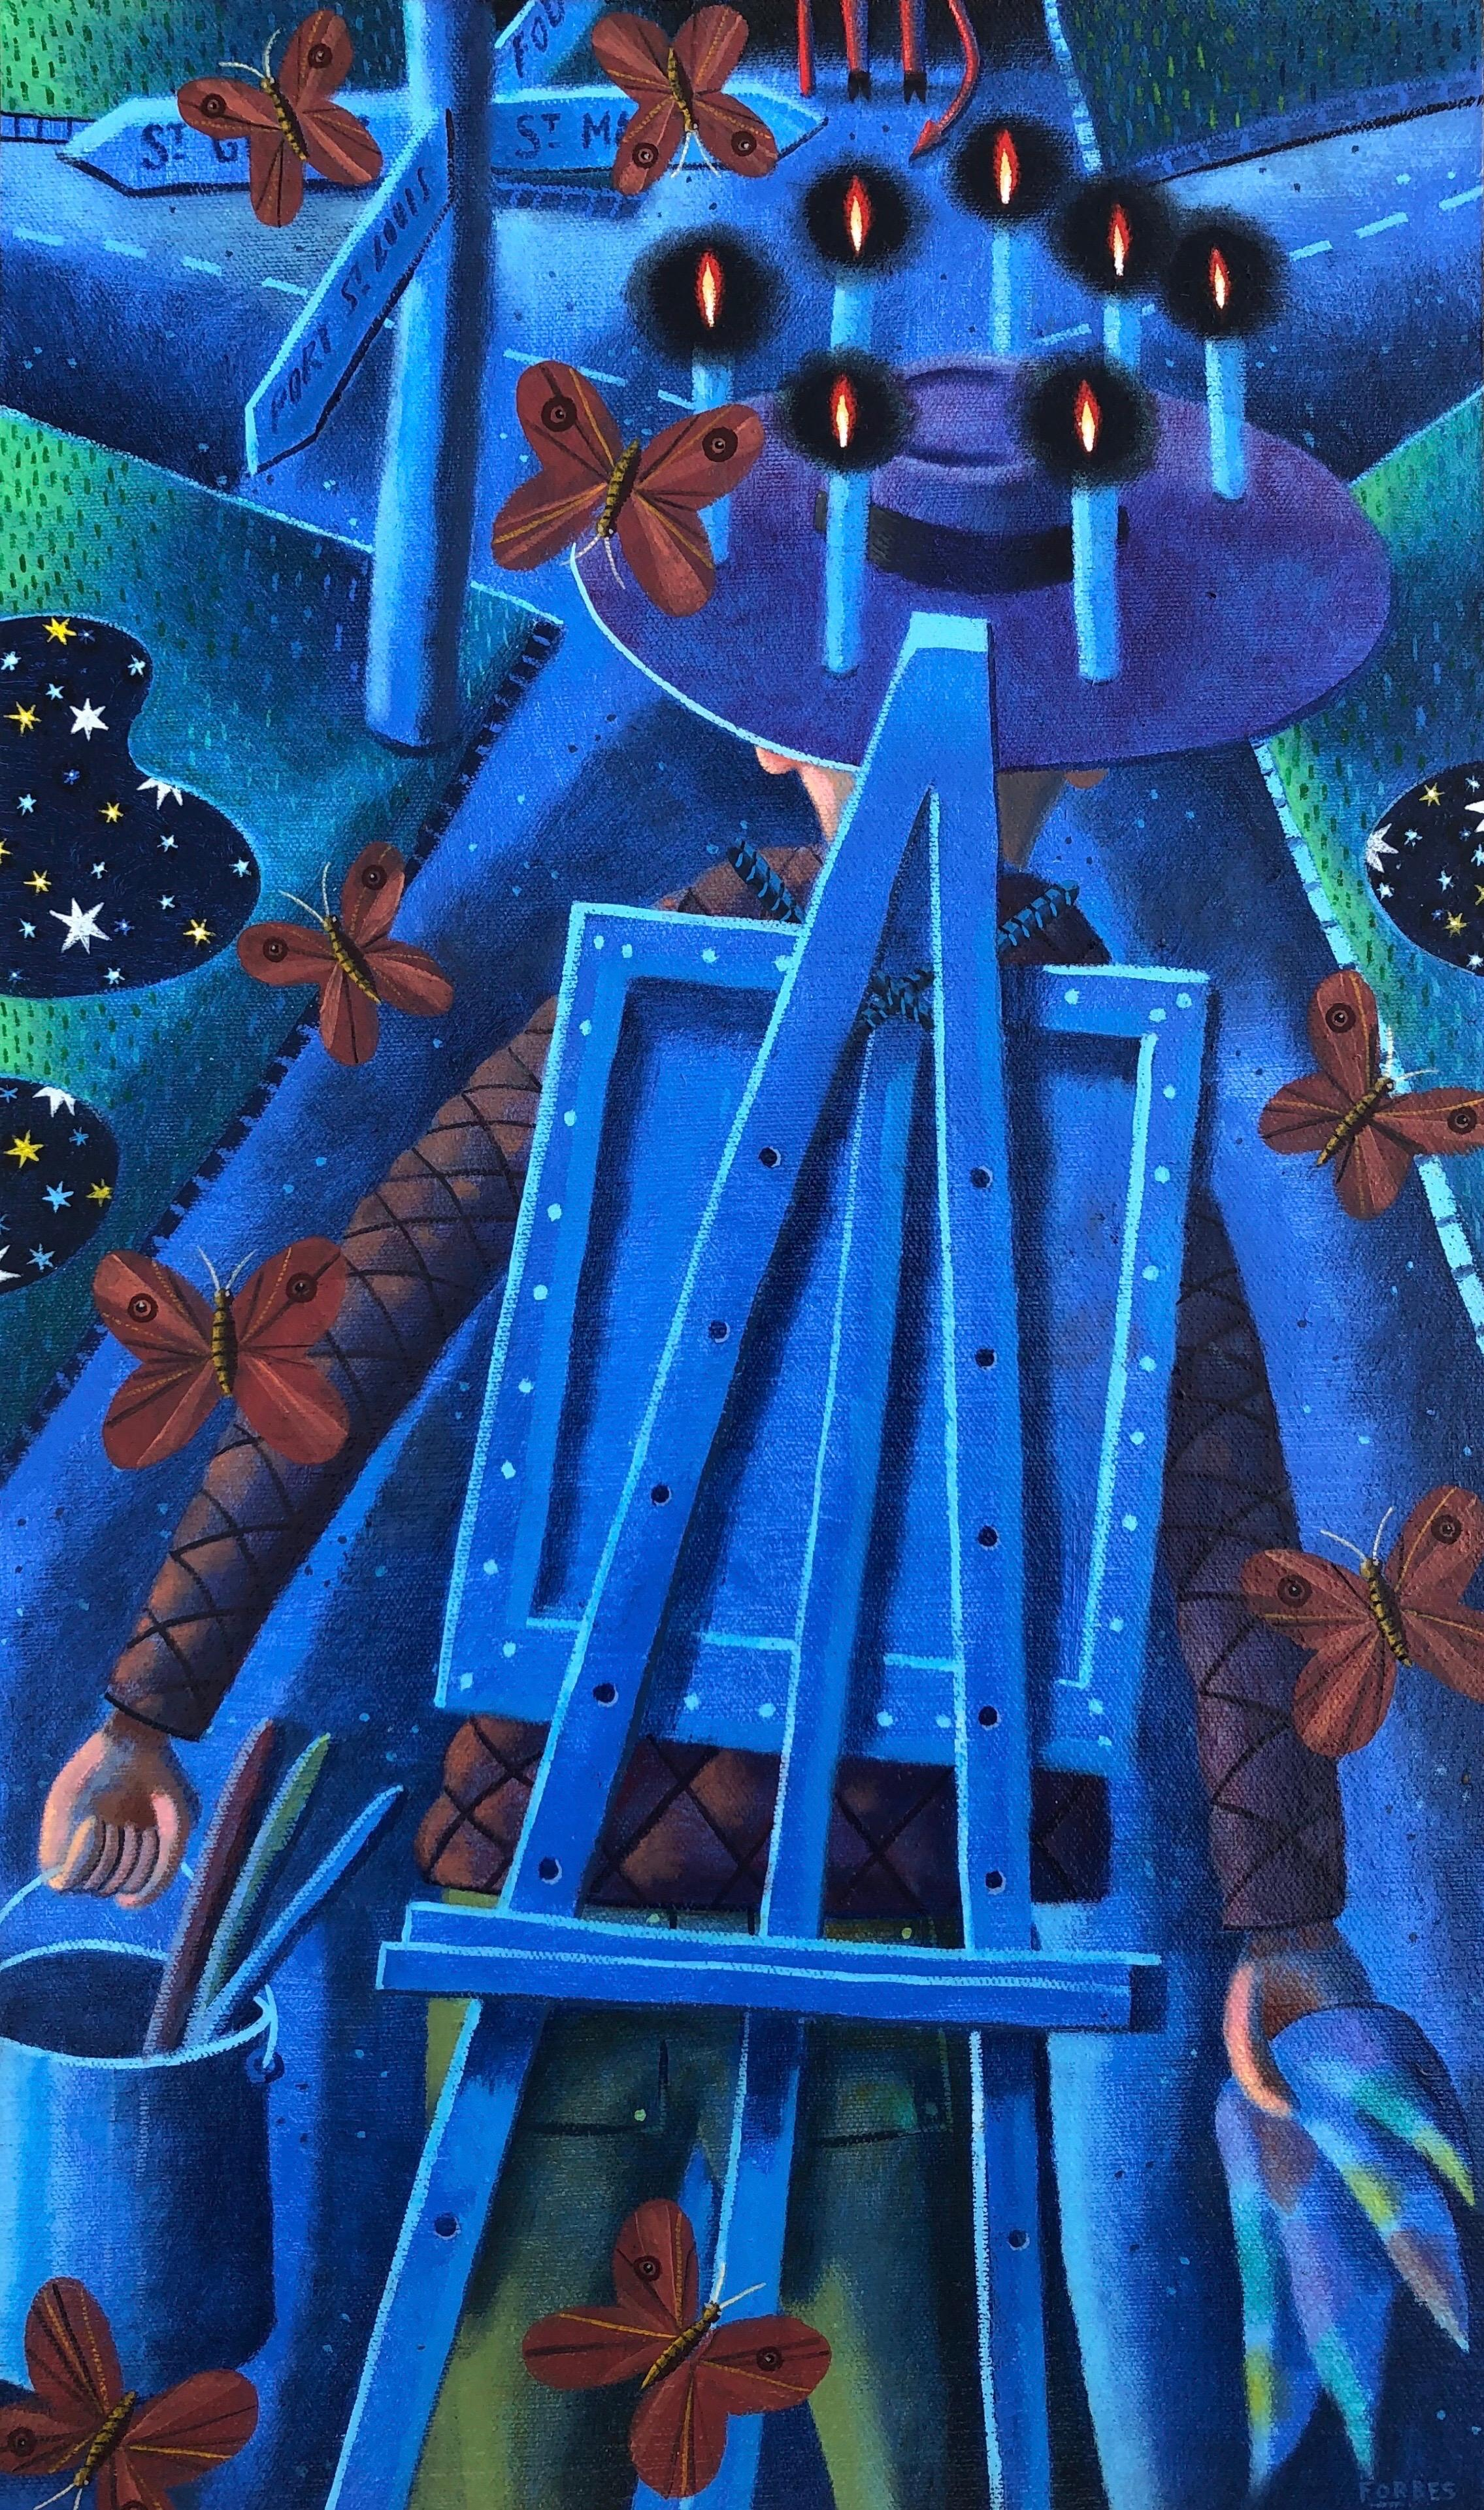 Starry Night with Crossroads, oil painting, blue, candles, moths, stars, silver